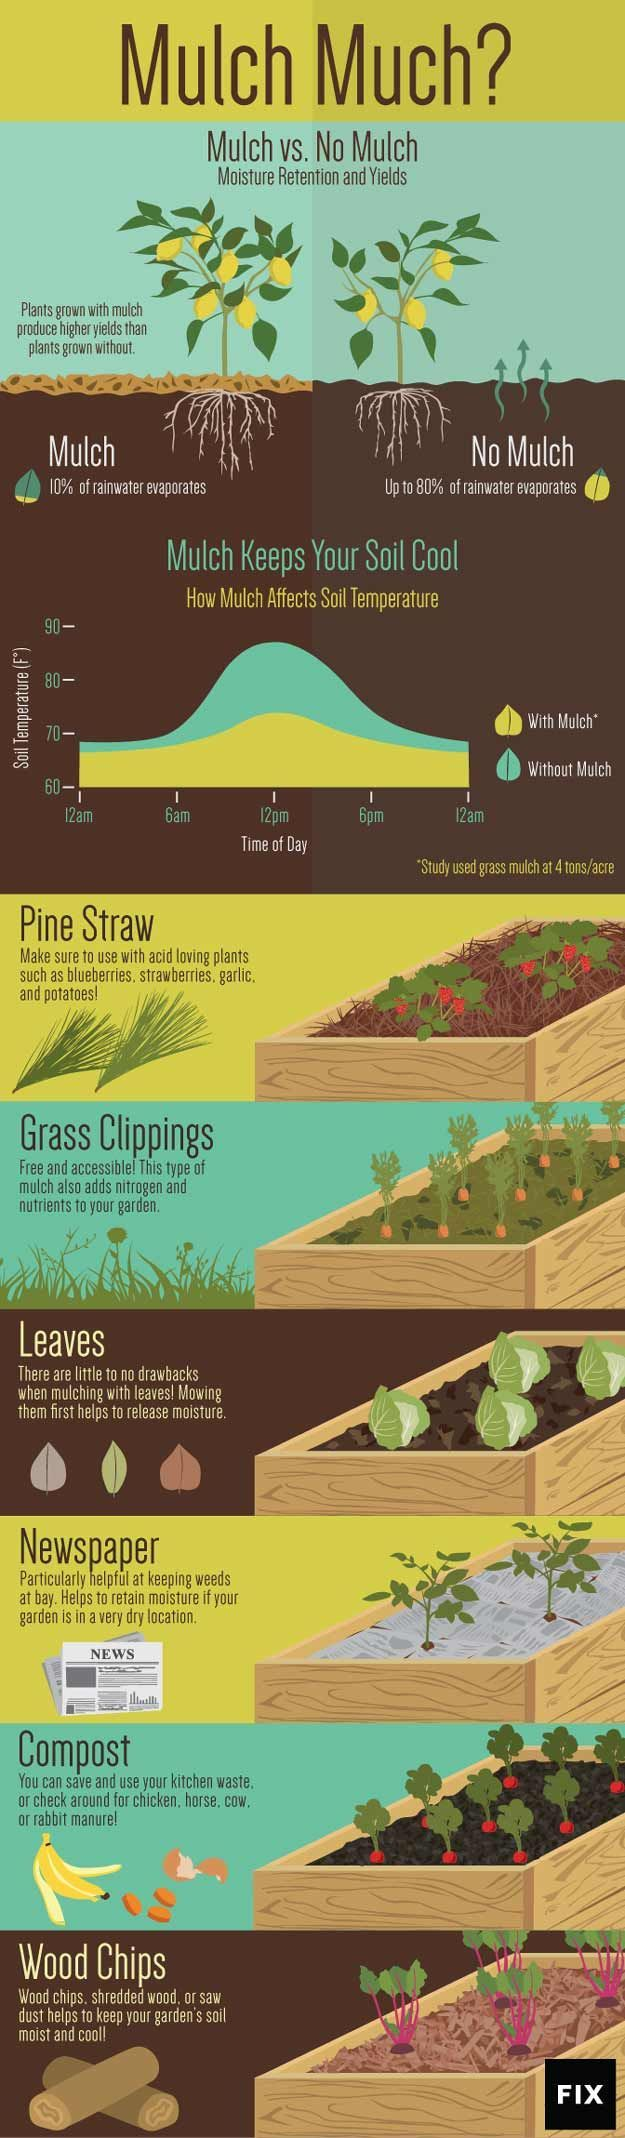 The Benefits Of Garden Mulch | Gardening & Homesteading Tips by Pioneer Settler at http://pioneersettler.com/garden-mulch/